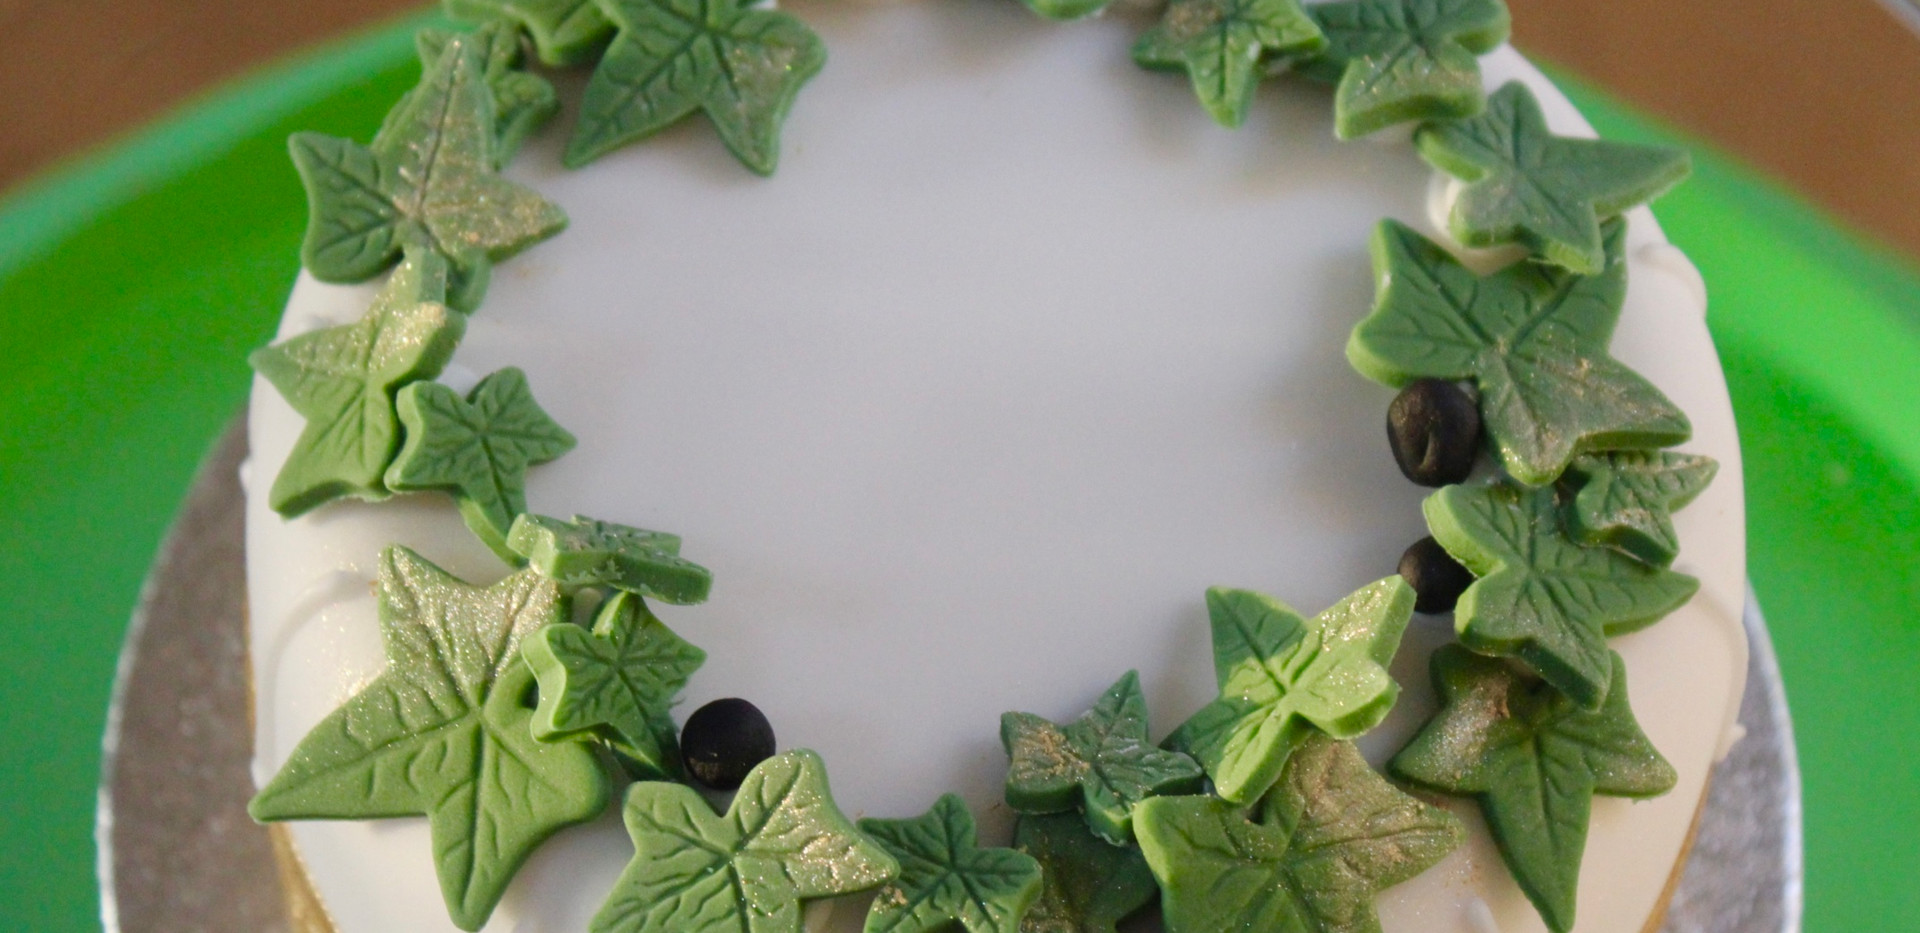 Small Ivy cake - top view.jpeg